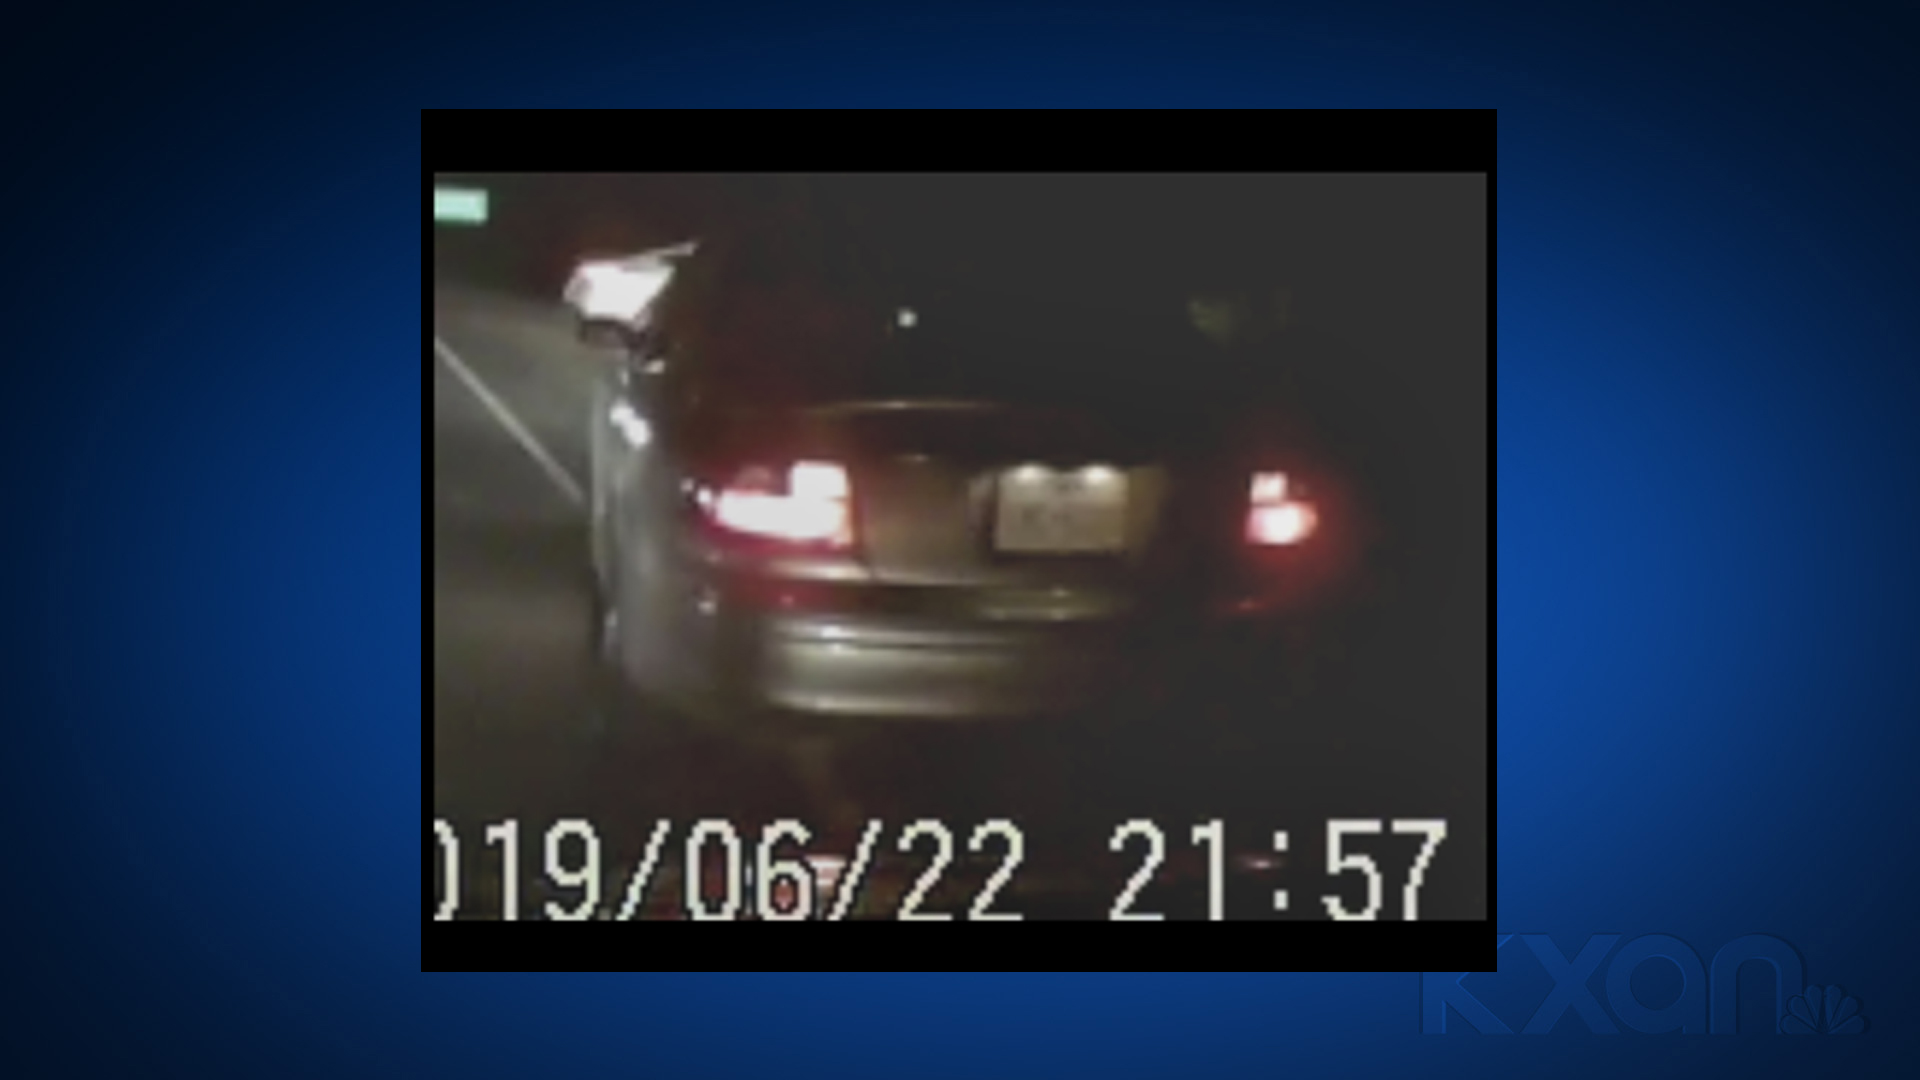 Texas DPS asking for public help tracking down driver